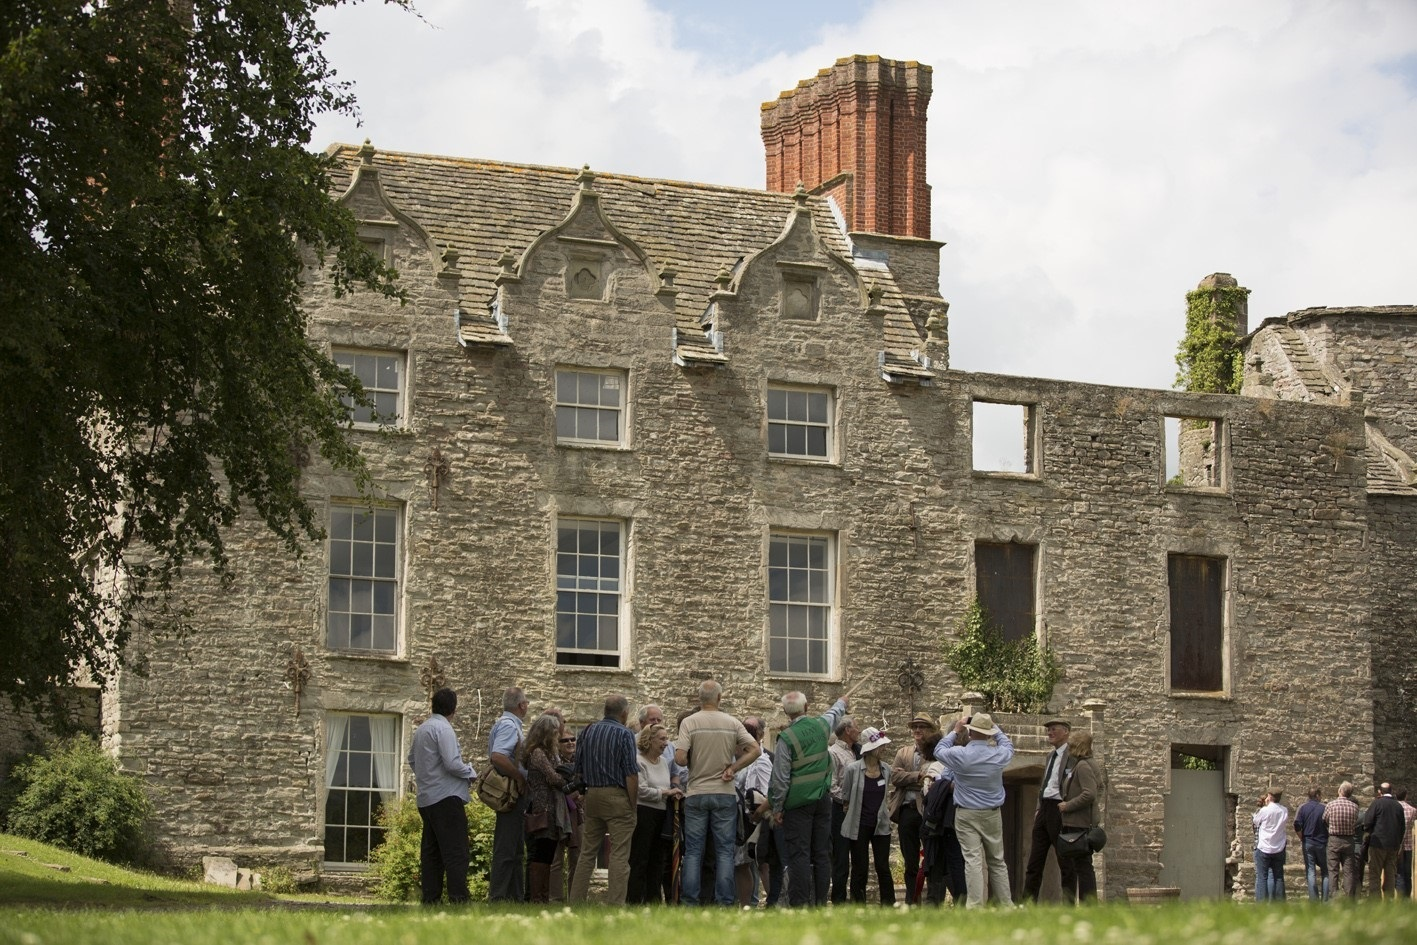 Tour group at Hay Castle. Photo by Isla Hampton.